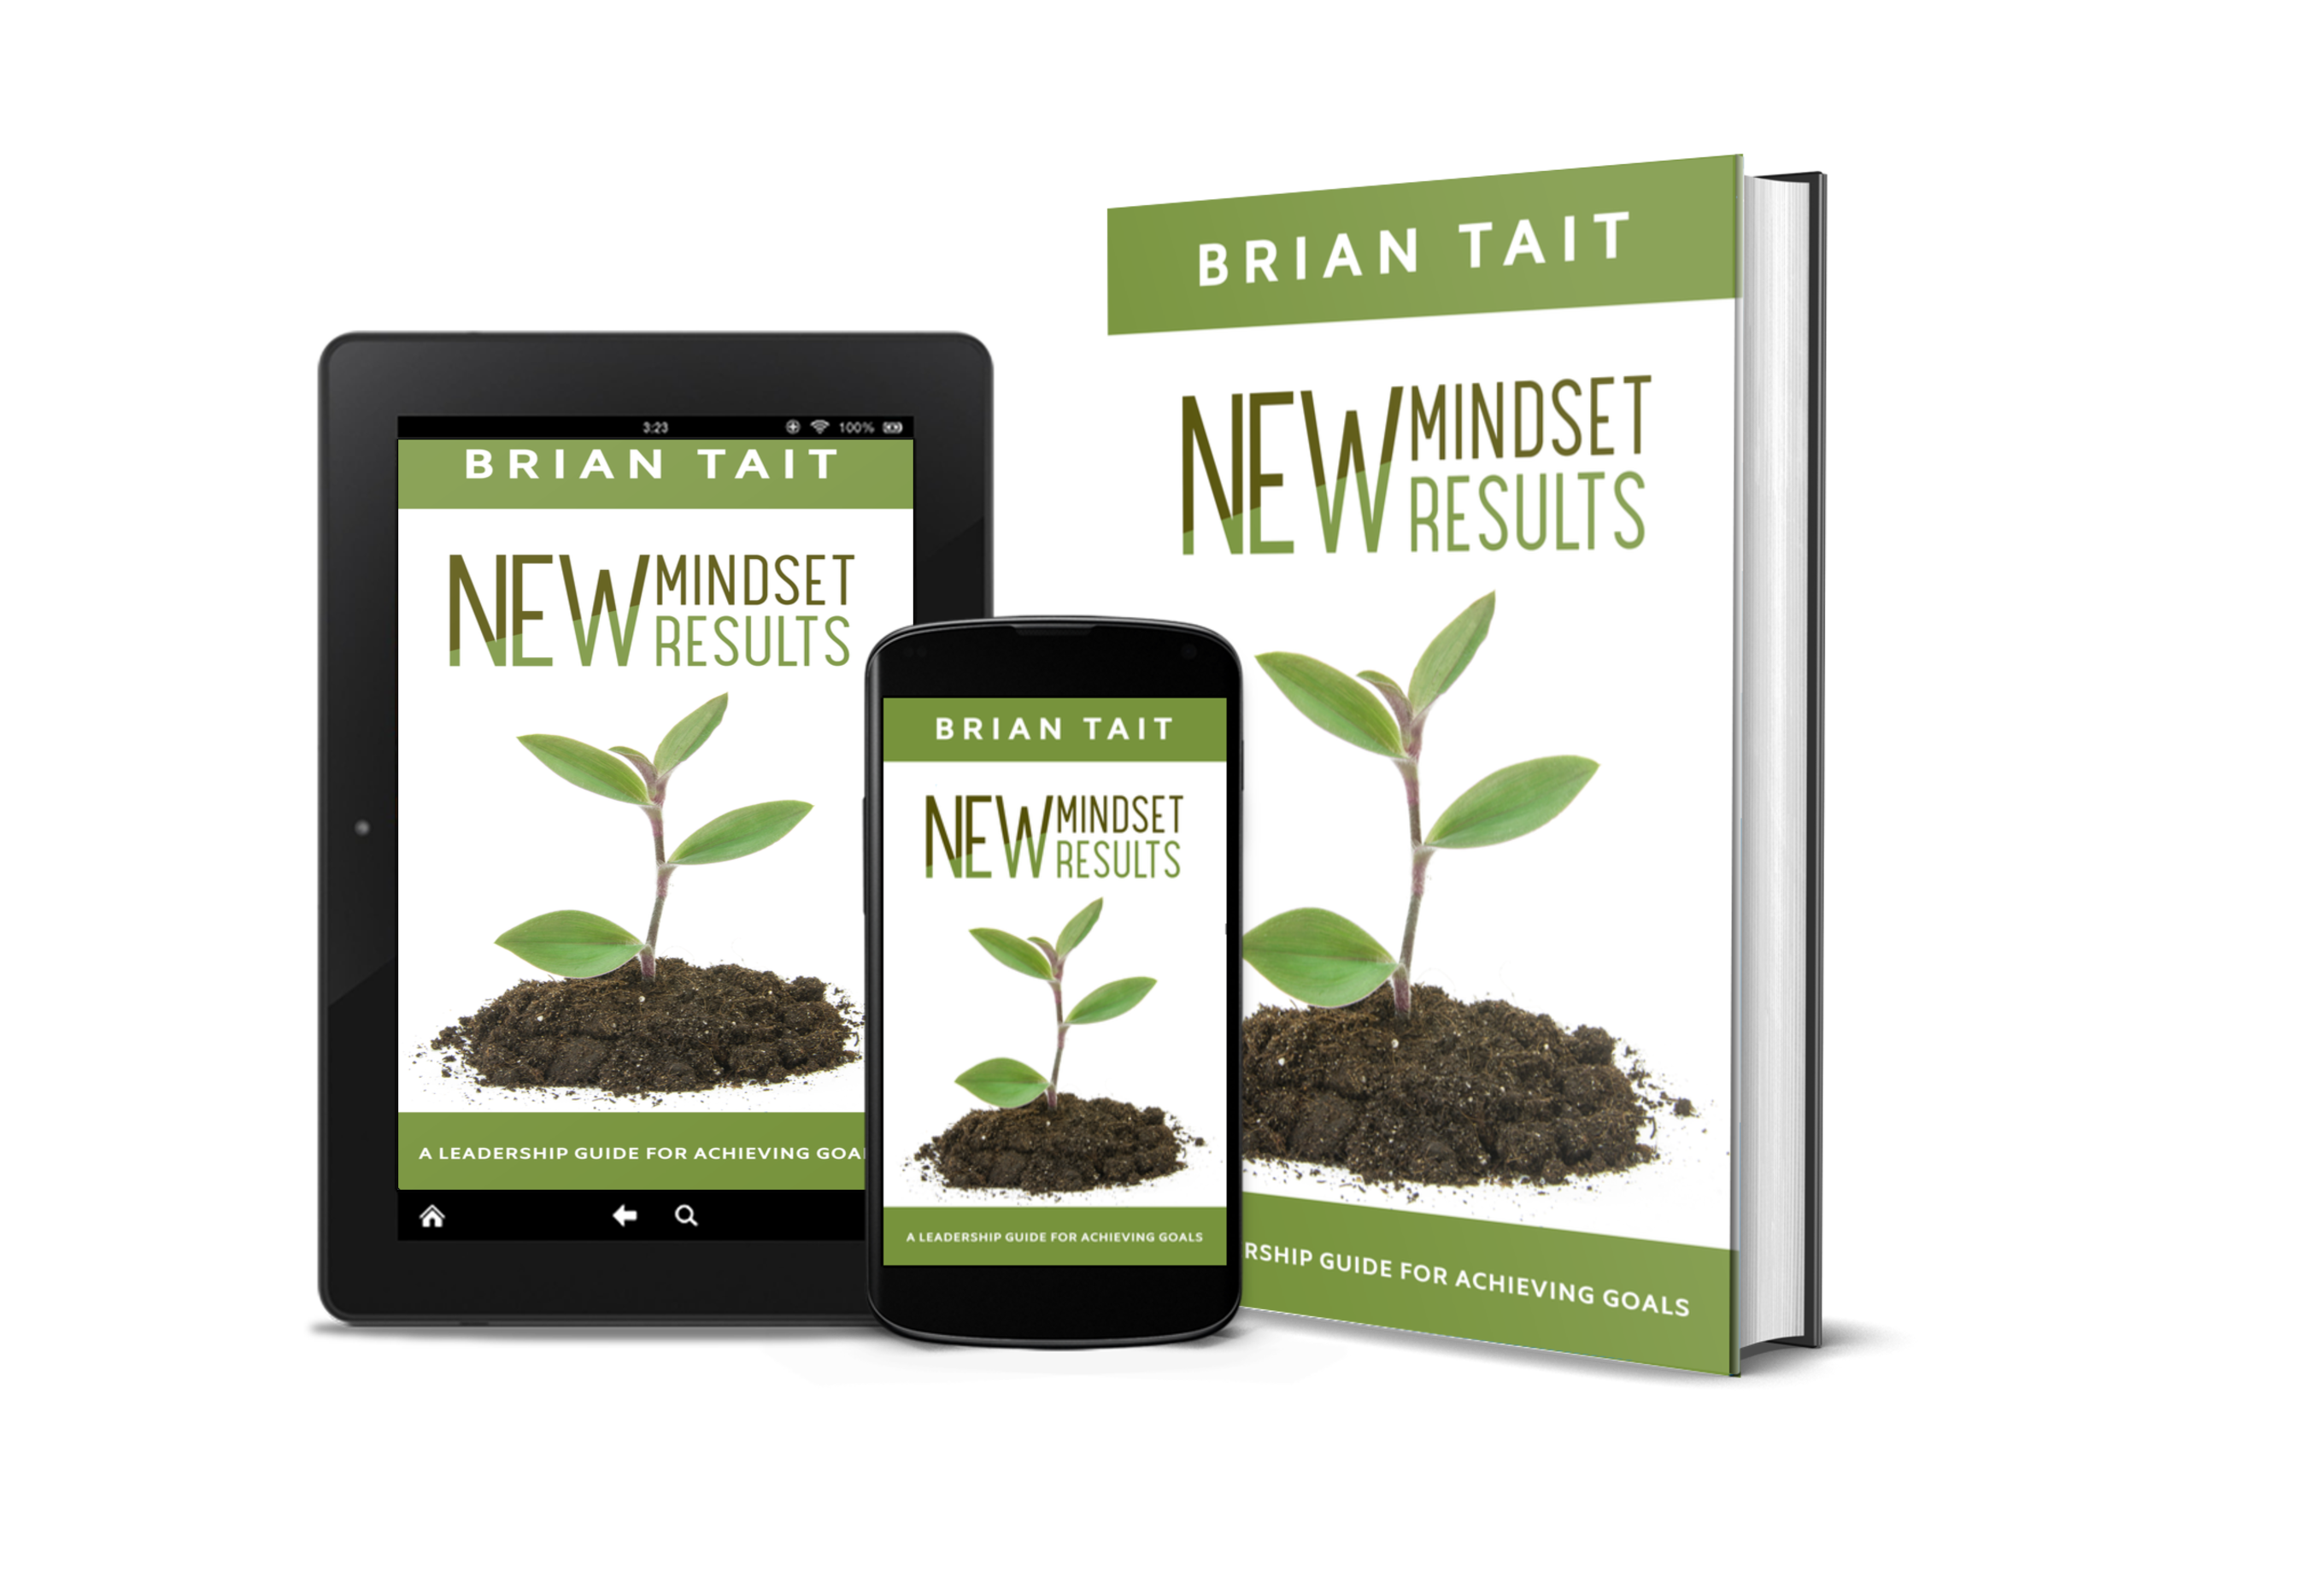 New Mindset New Results: A Leadership Guide for Achieving Goals